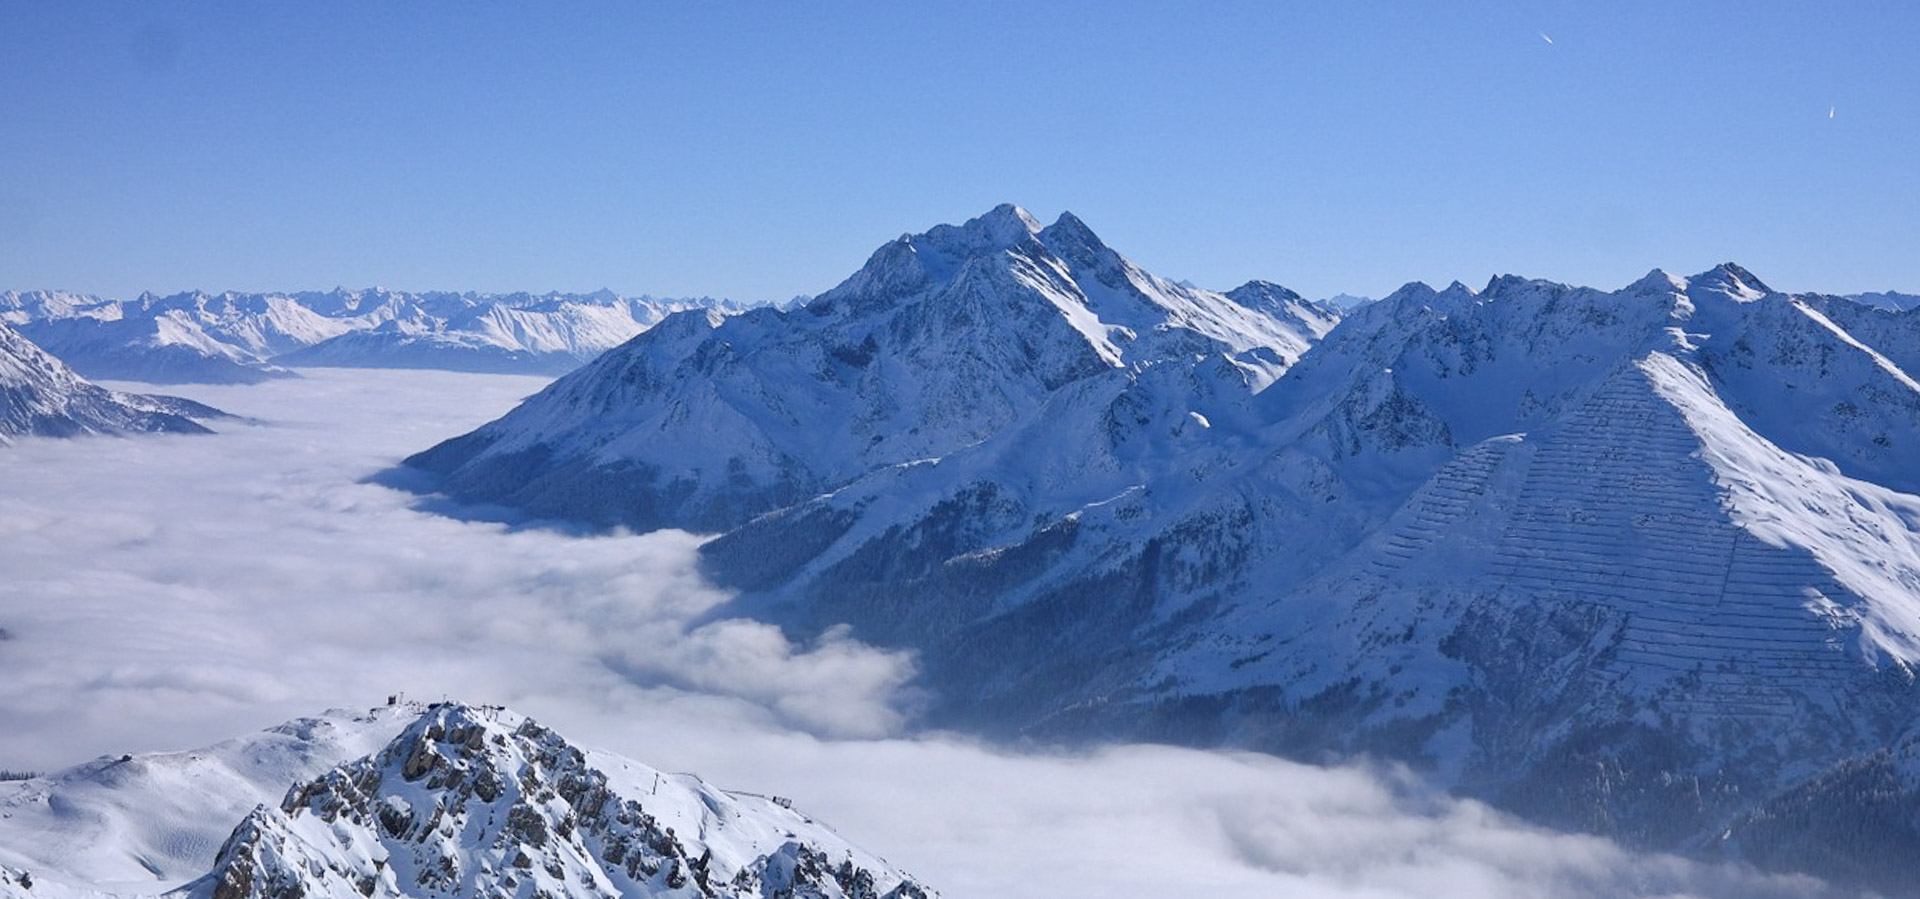 The highest peaks in the ski resort of Zurs reaching up above a sea of clouds